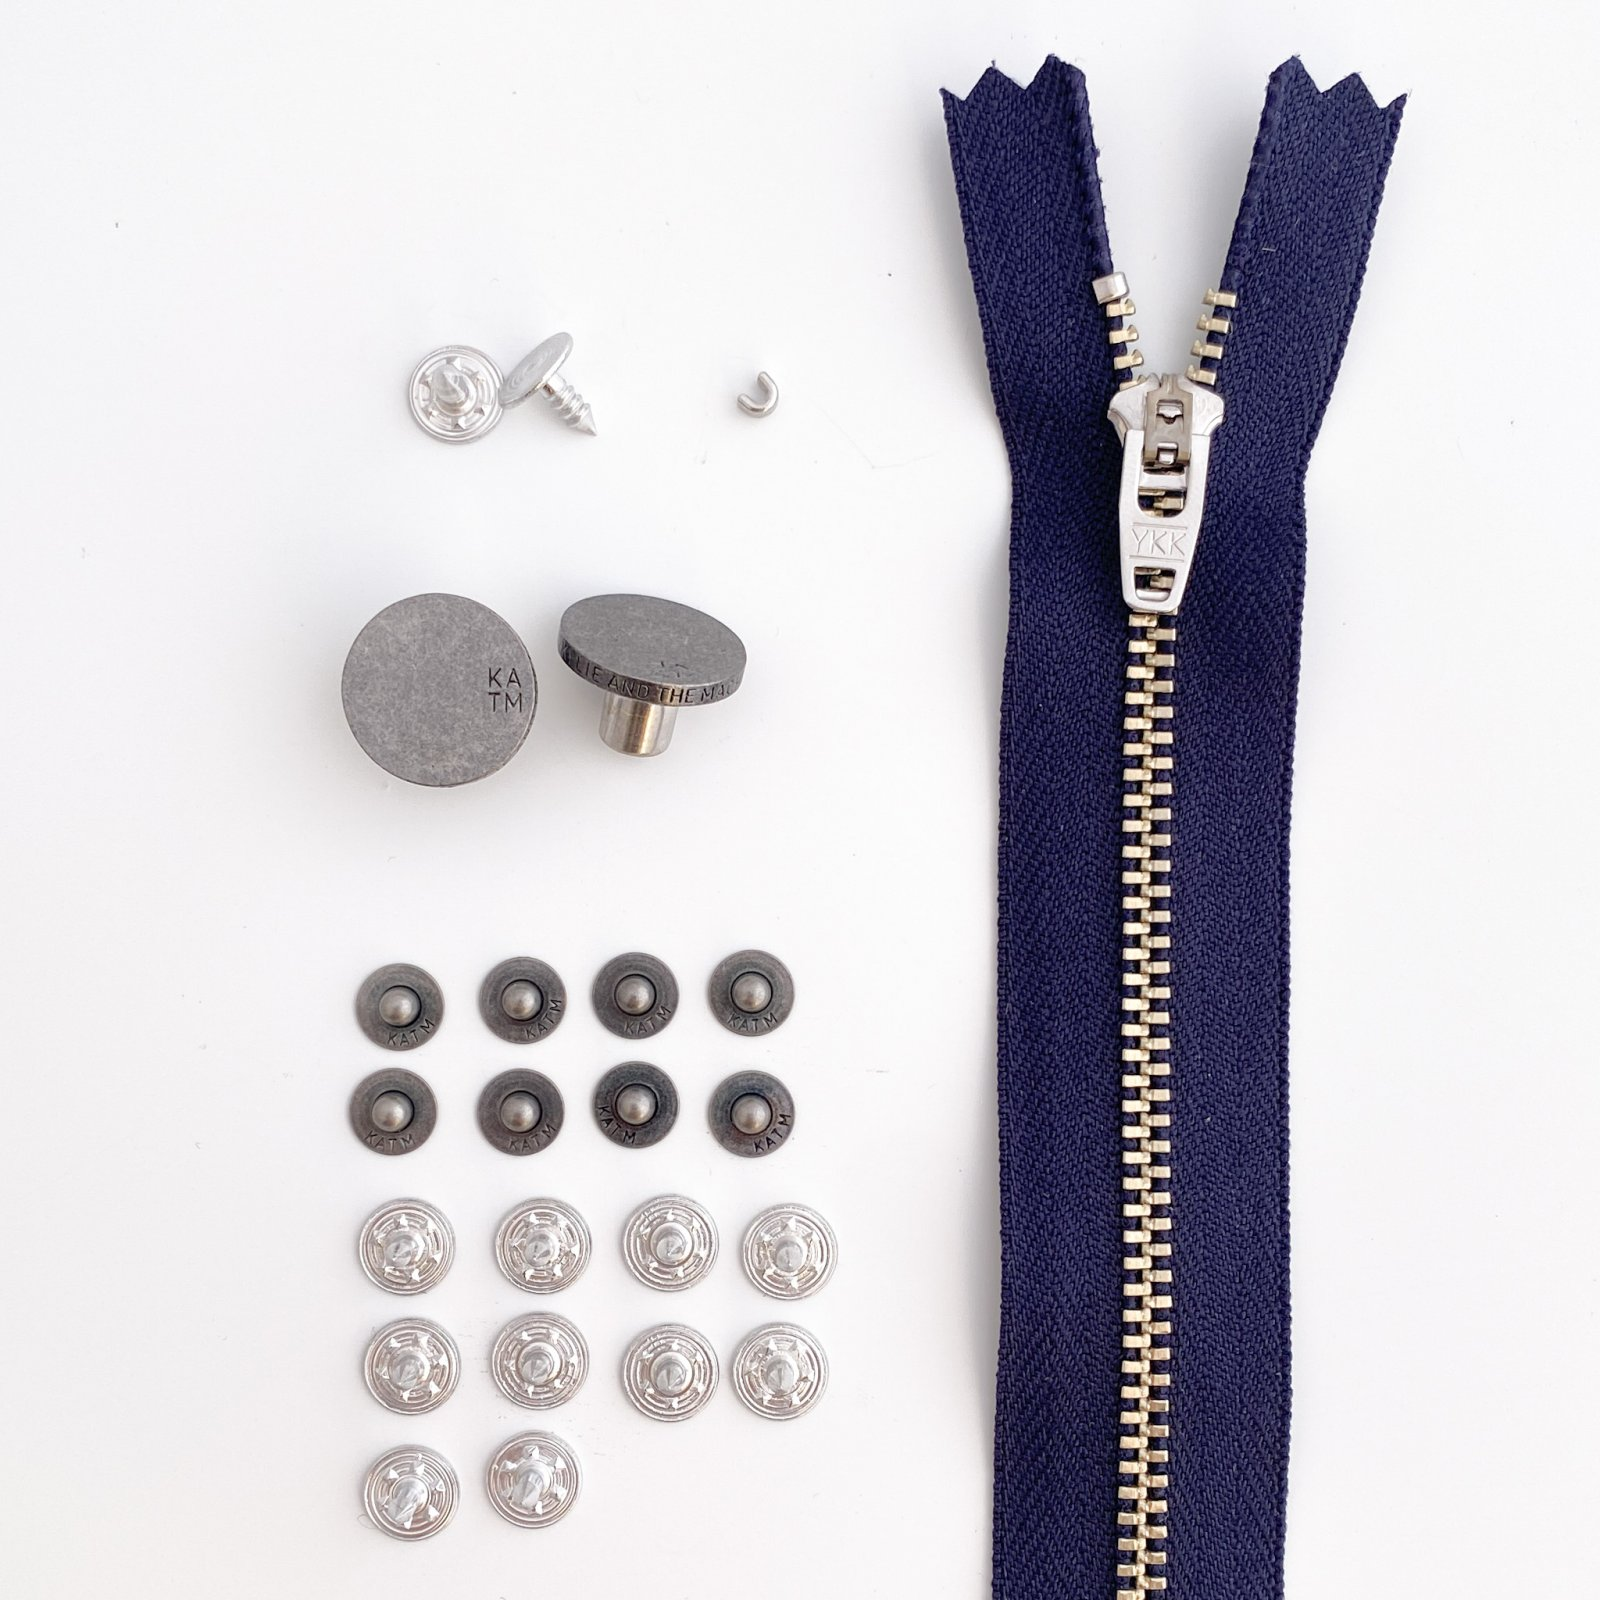 Kylie and the Machine Jeans Hardware Refill Kit